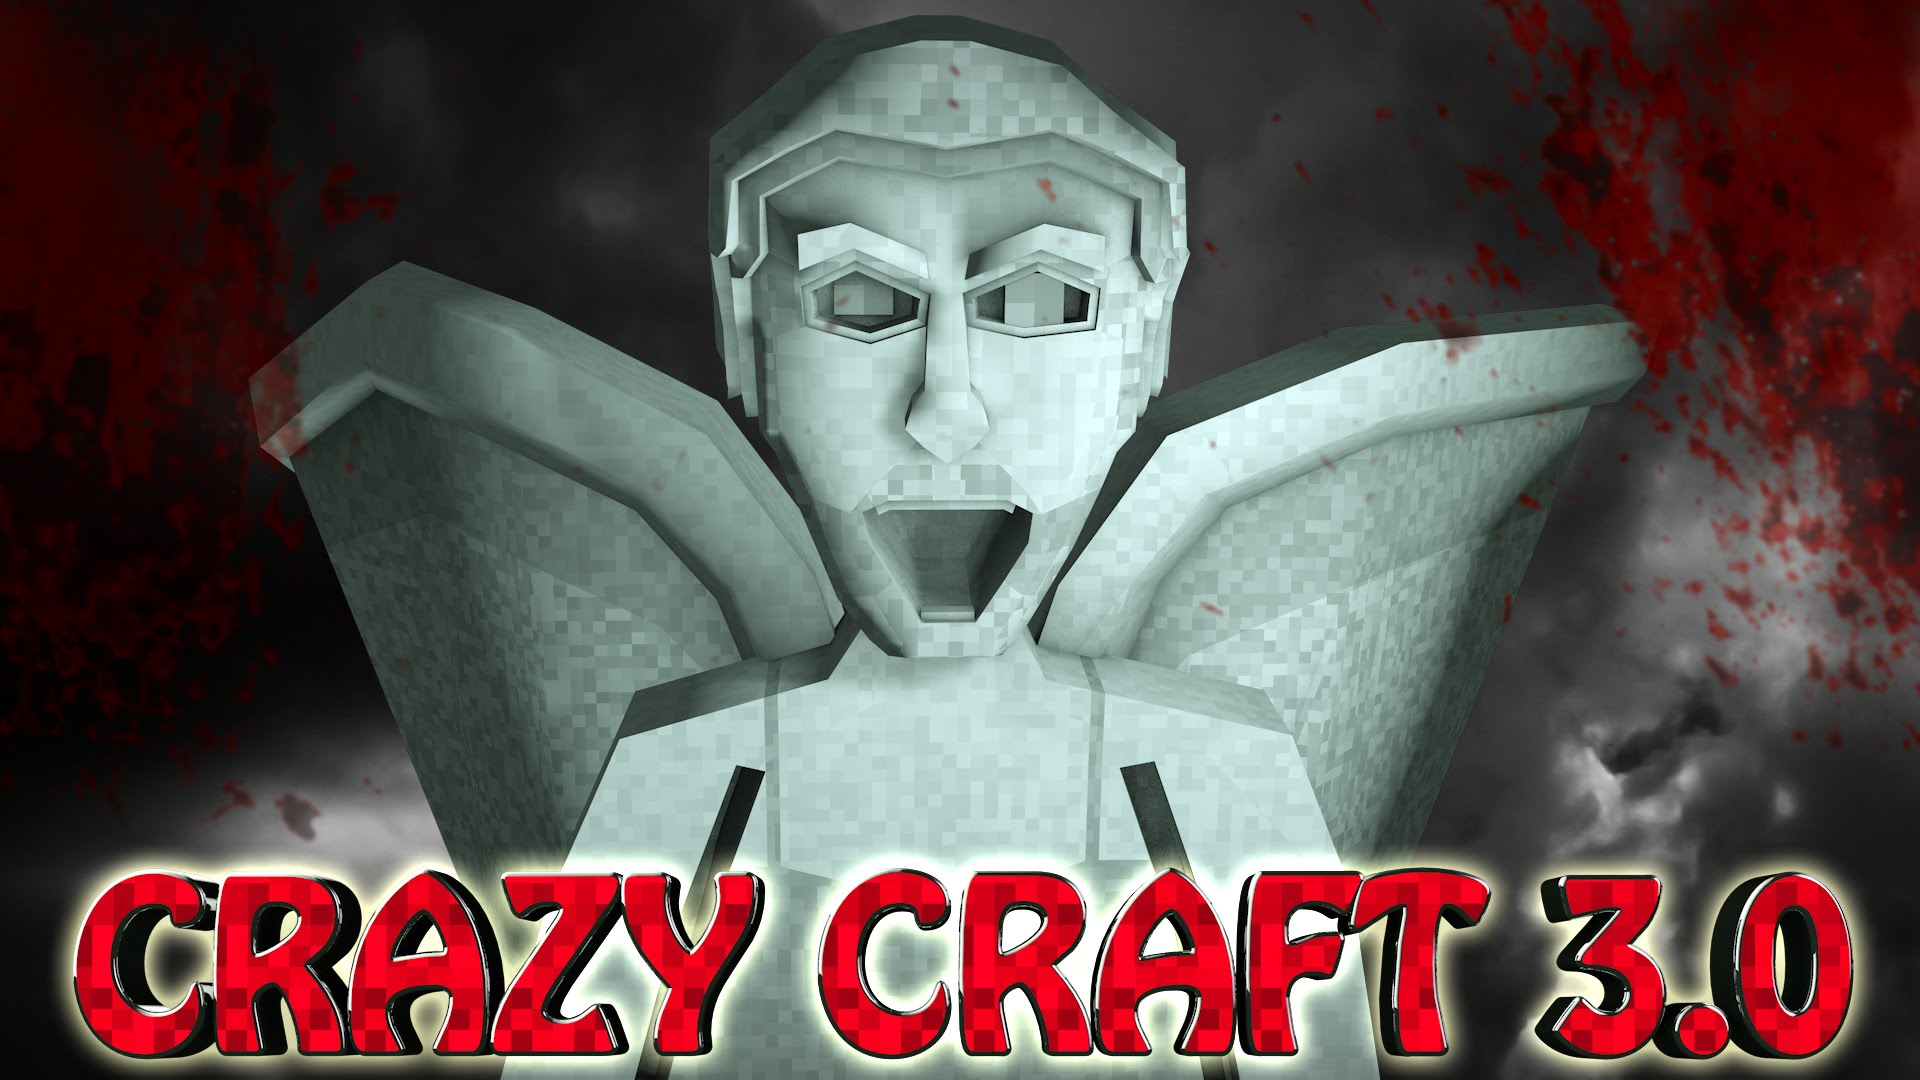 How Do You Stop Your Crazy Craft From Crashing